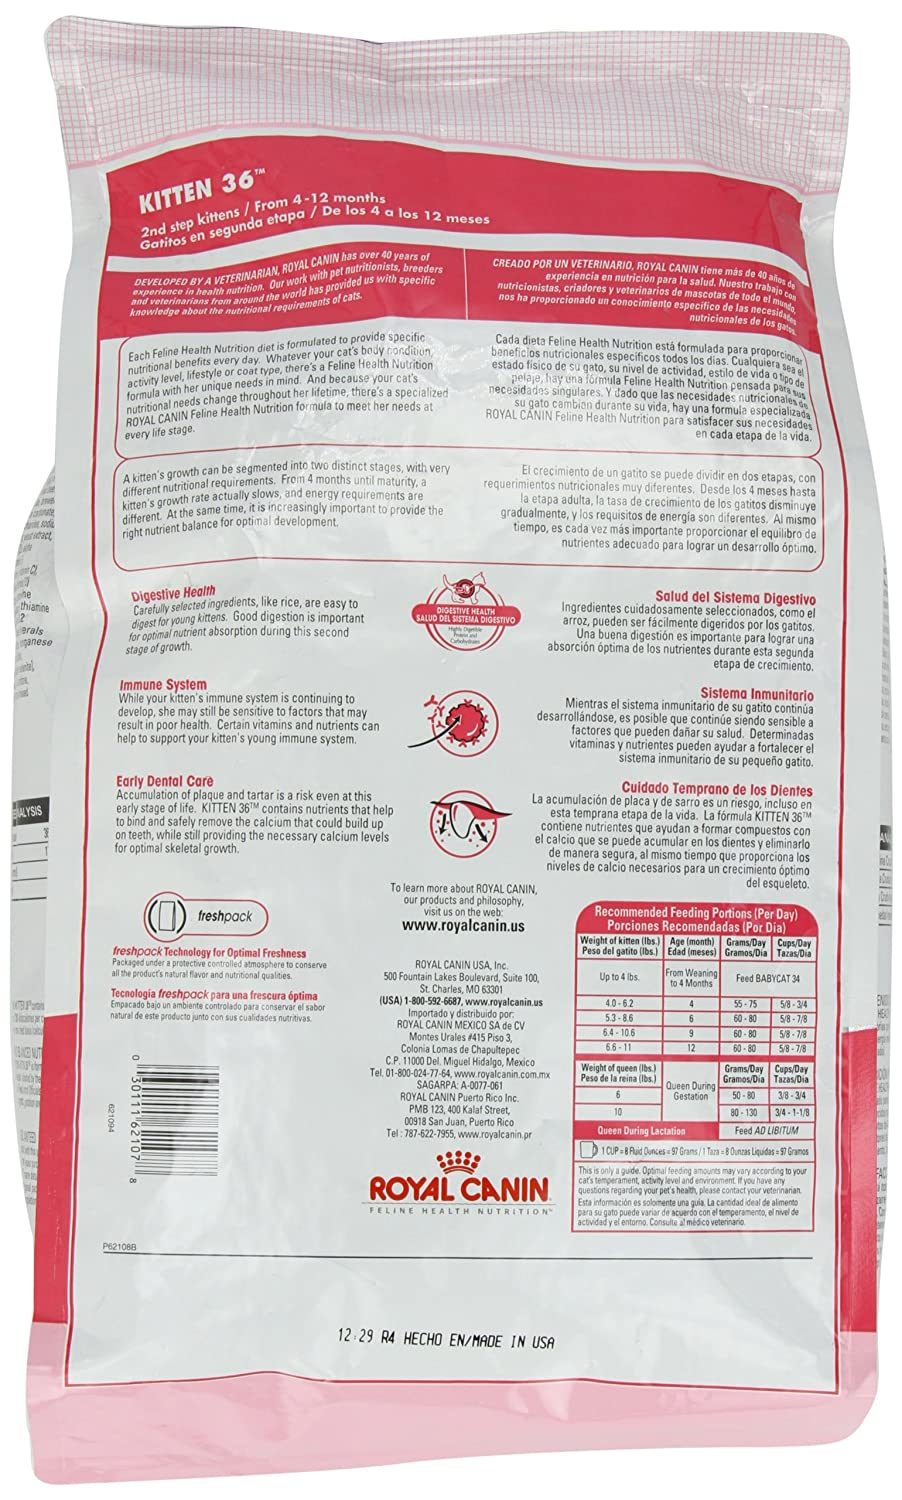 Royal Canin Dry Cat Food Kitten 36 Formula 7 Pound Bag